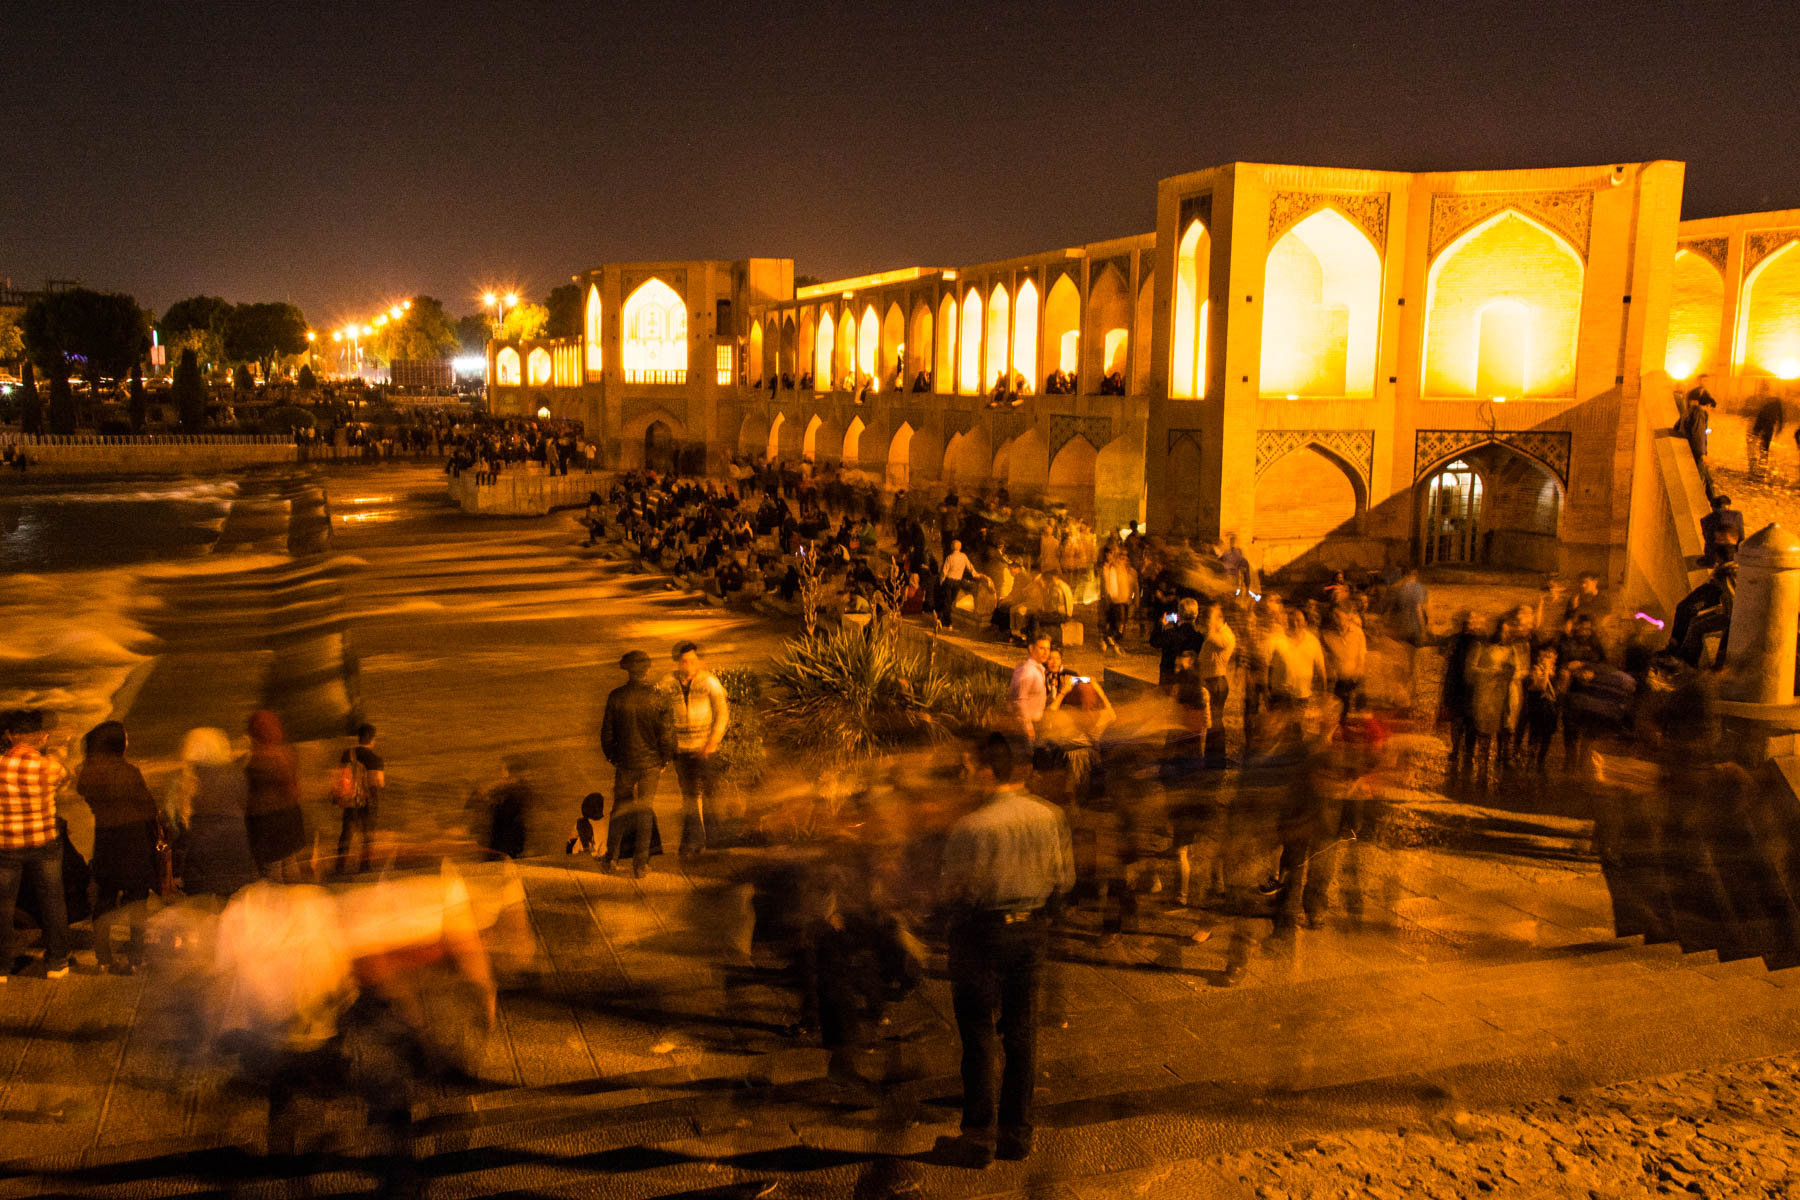 The Pol-e Khaju bridge in Isfahan teeming with life on a warm spring evening.